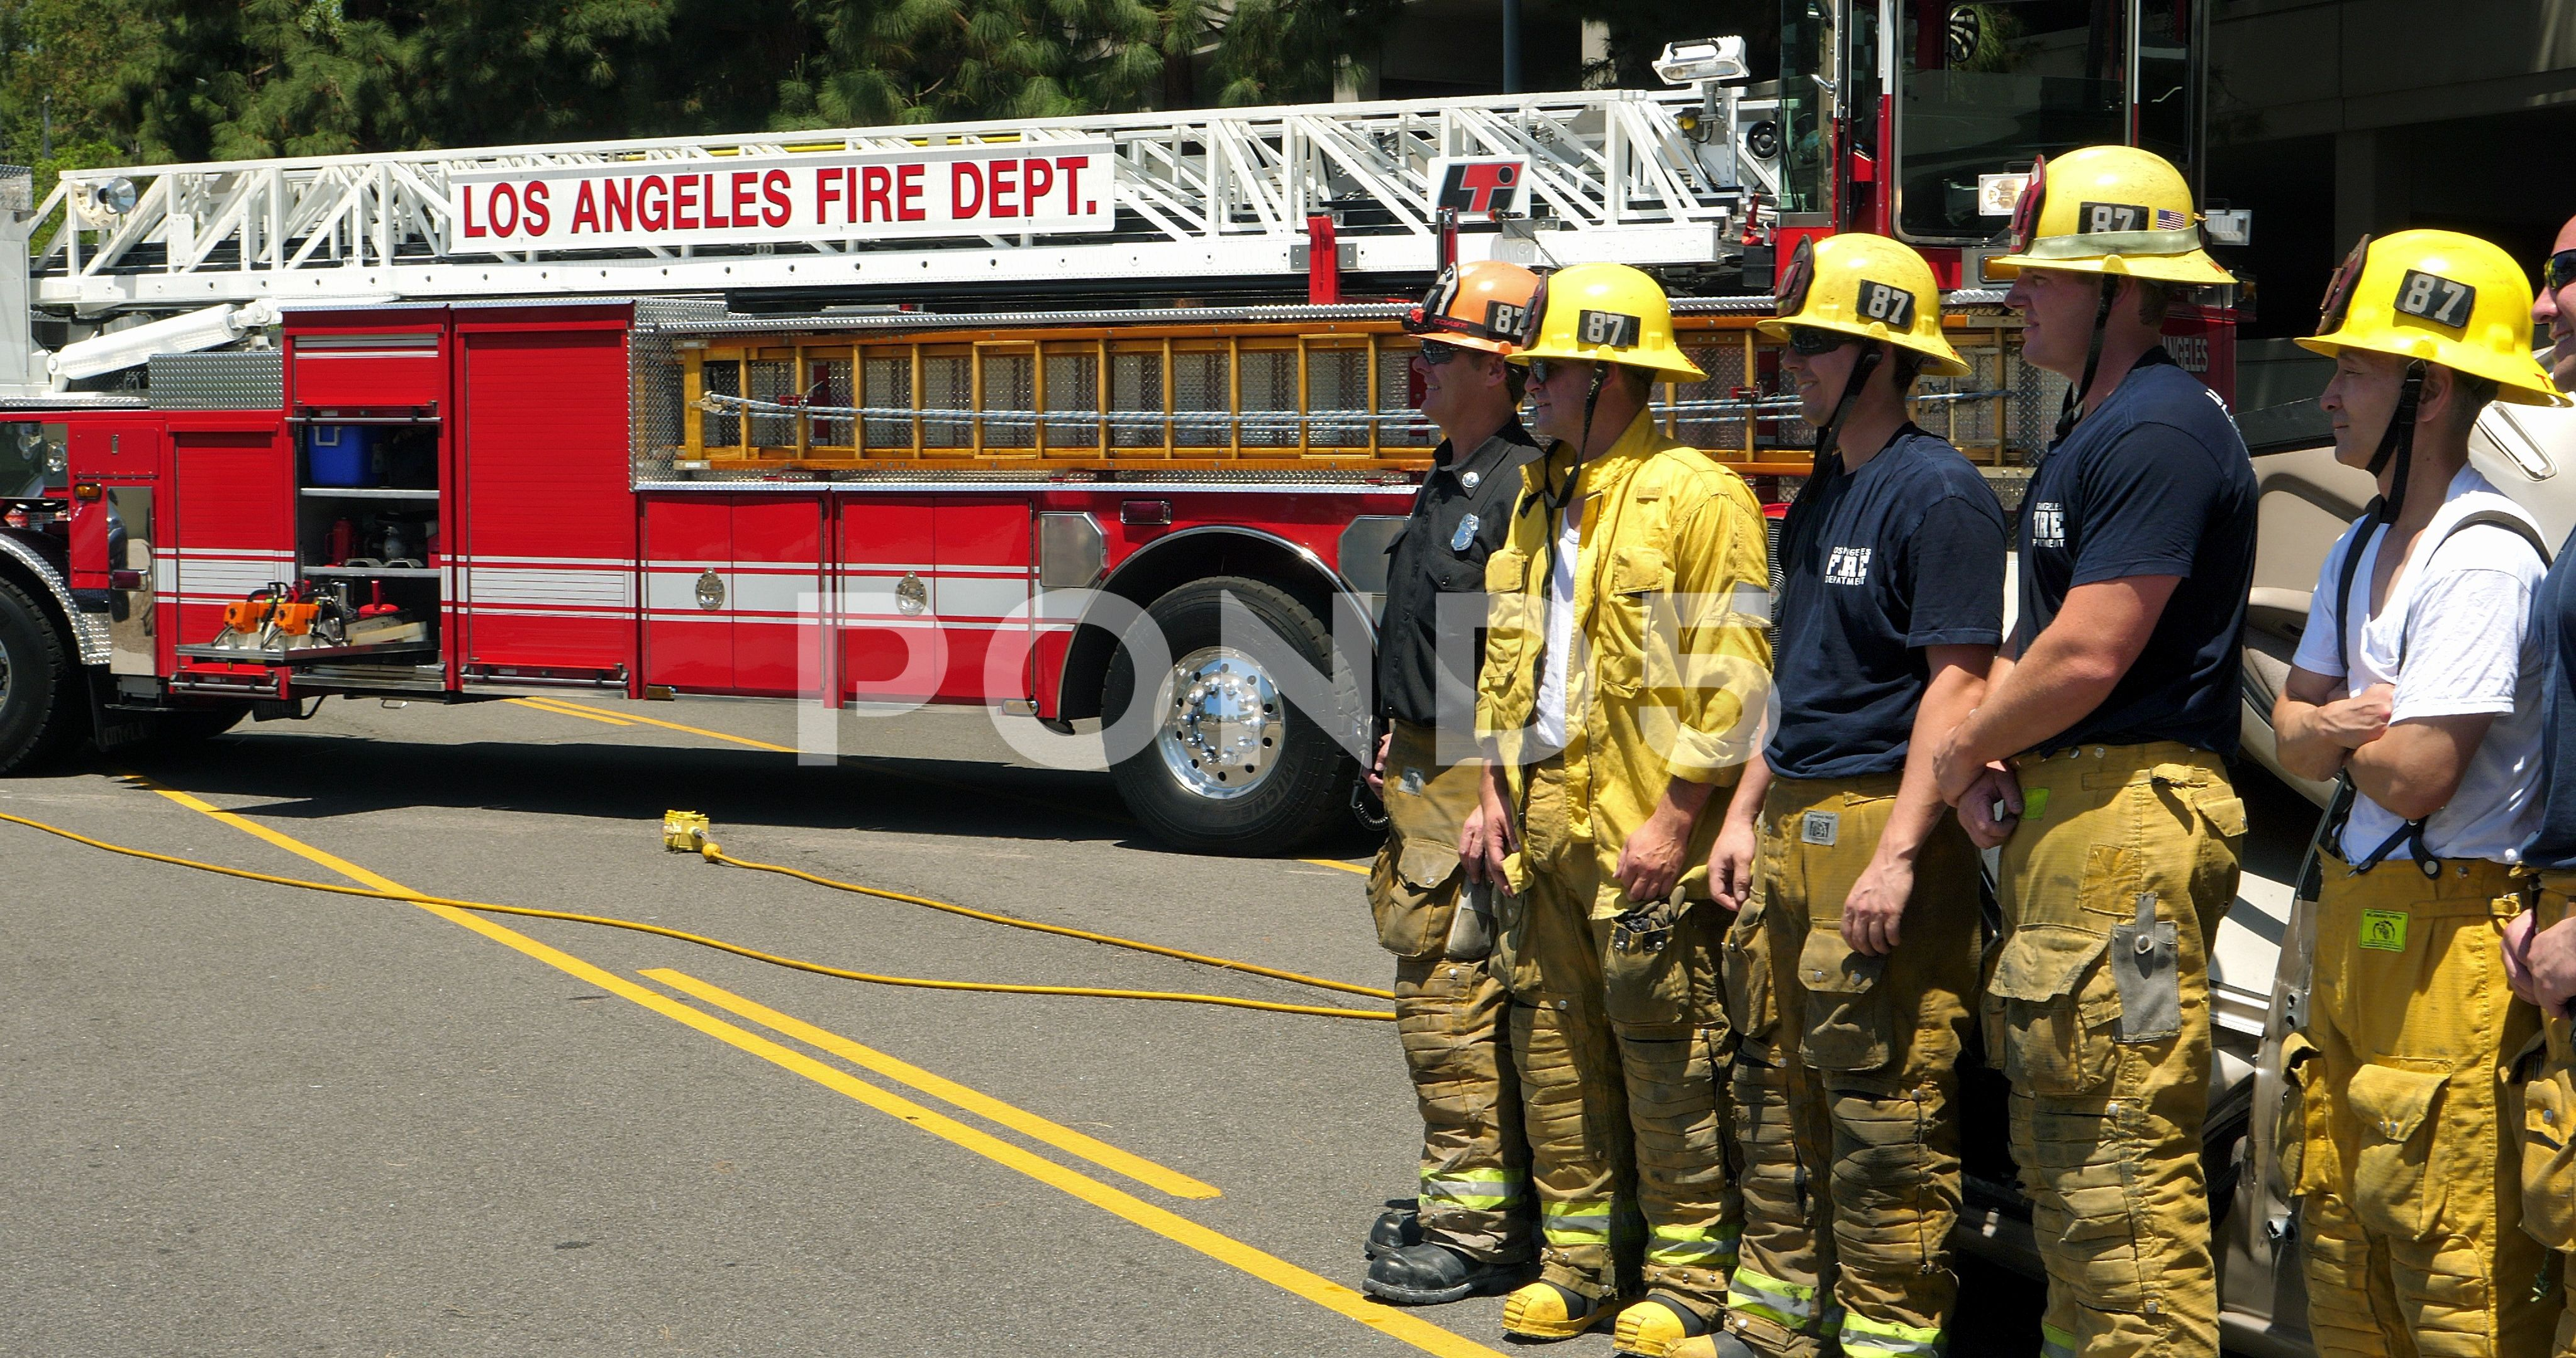 Los Angeles Fire Department Firefighters Relax After Rescue